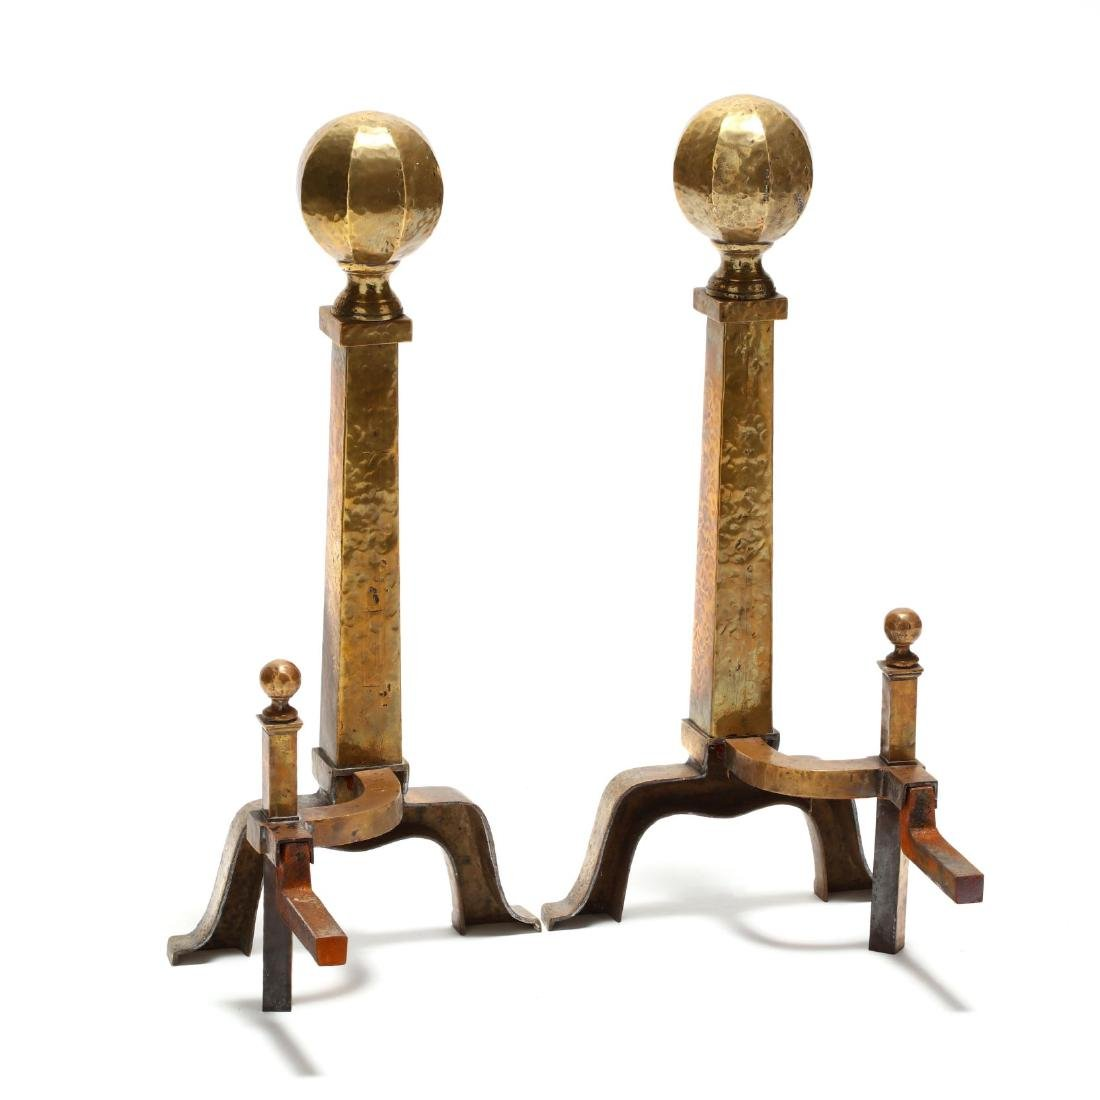 Pair of Arts and Crafts Style Andirons - 3